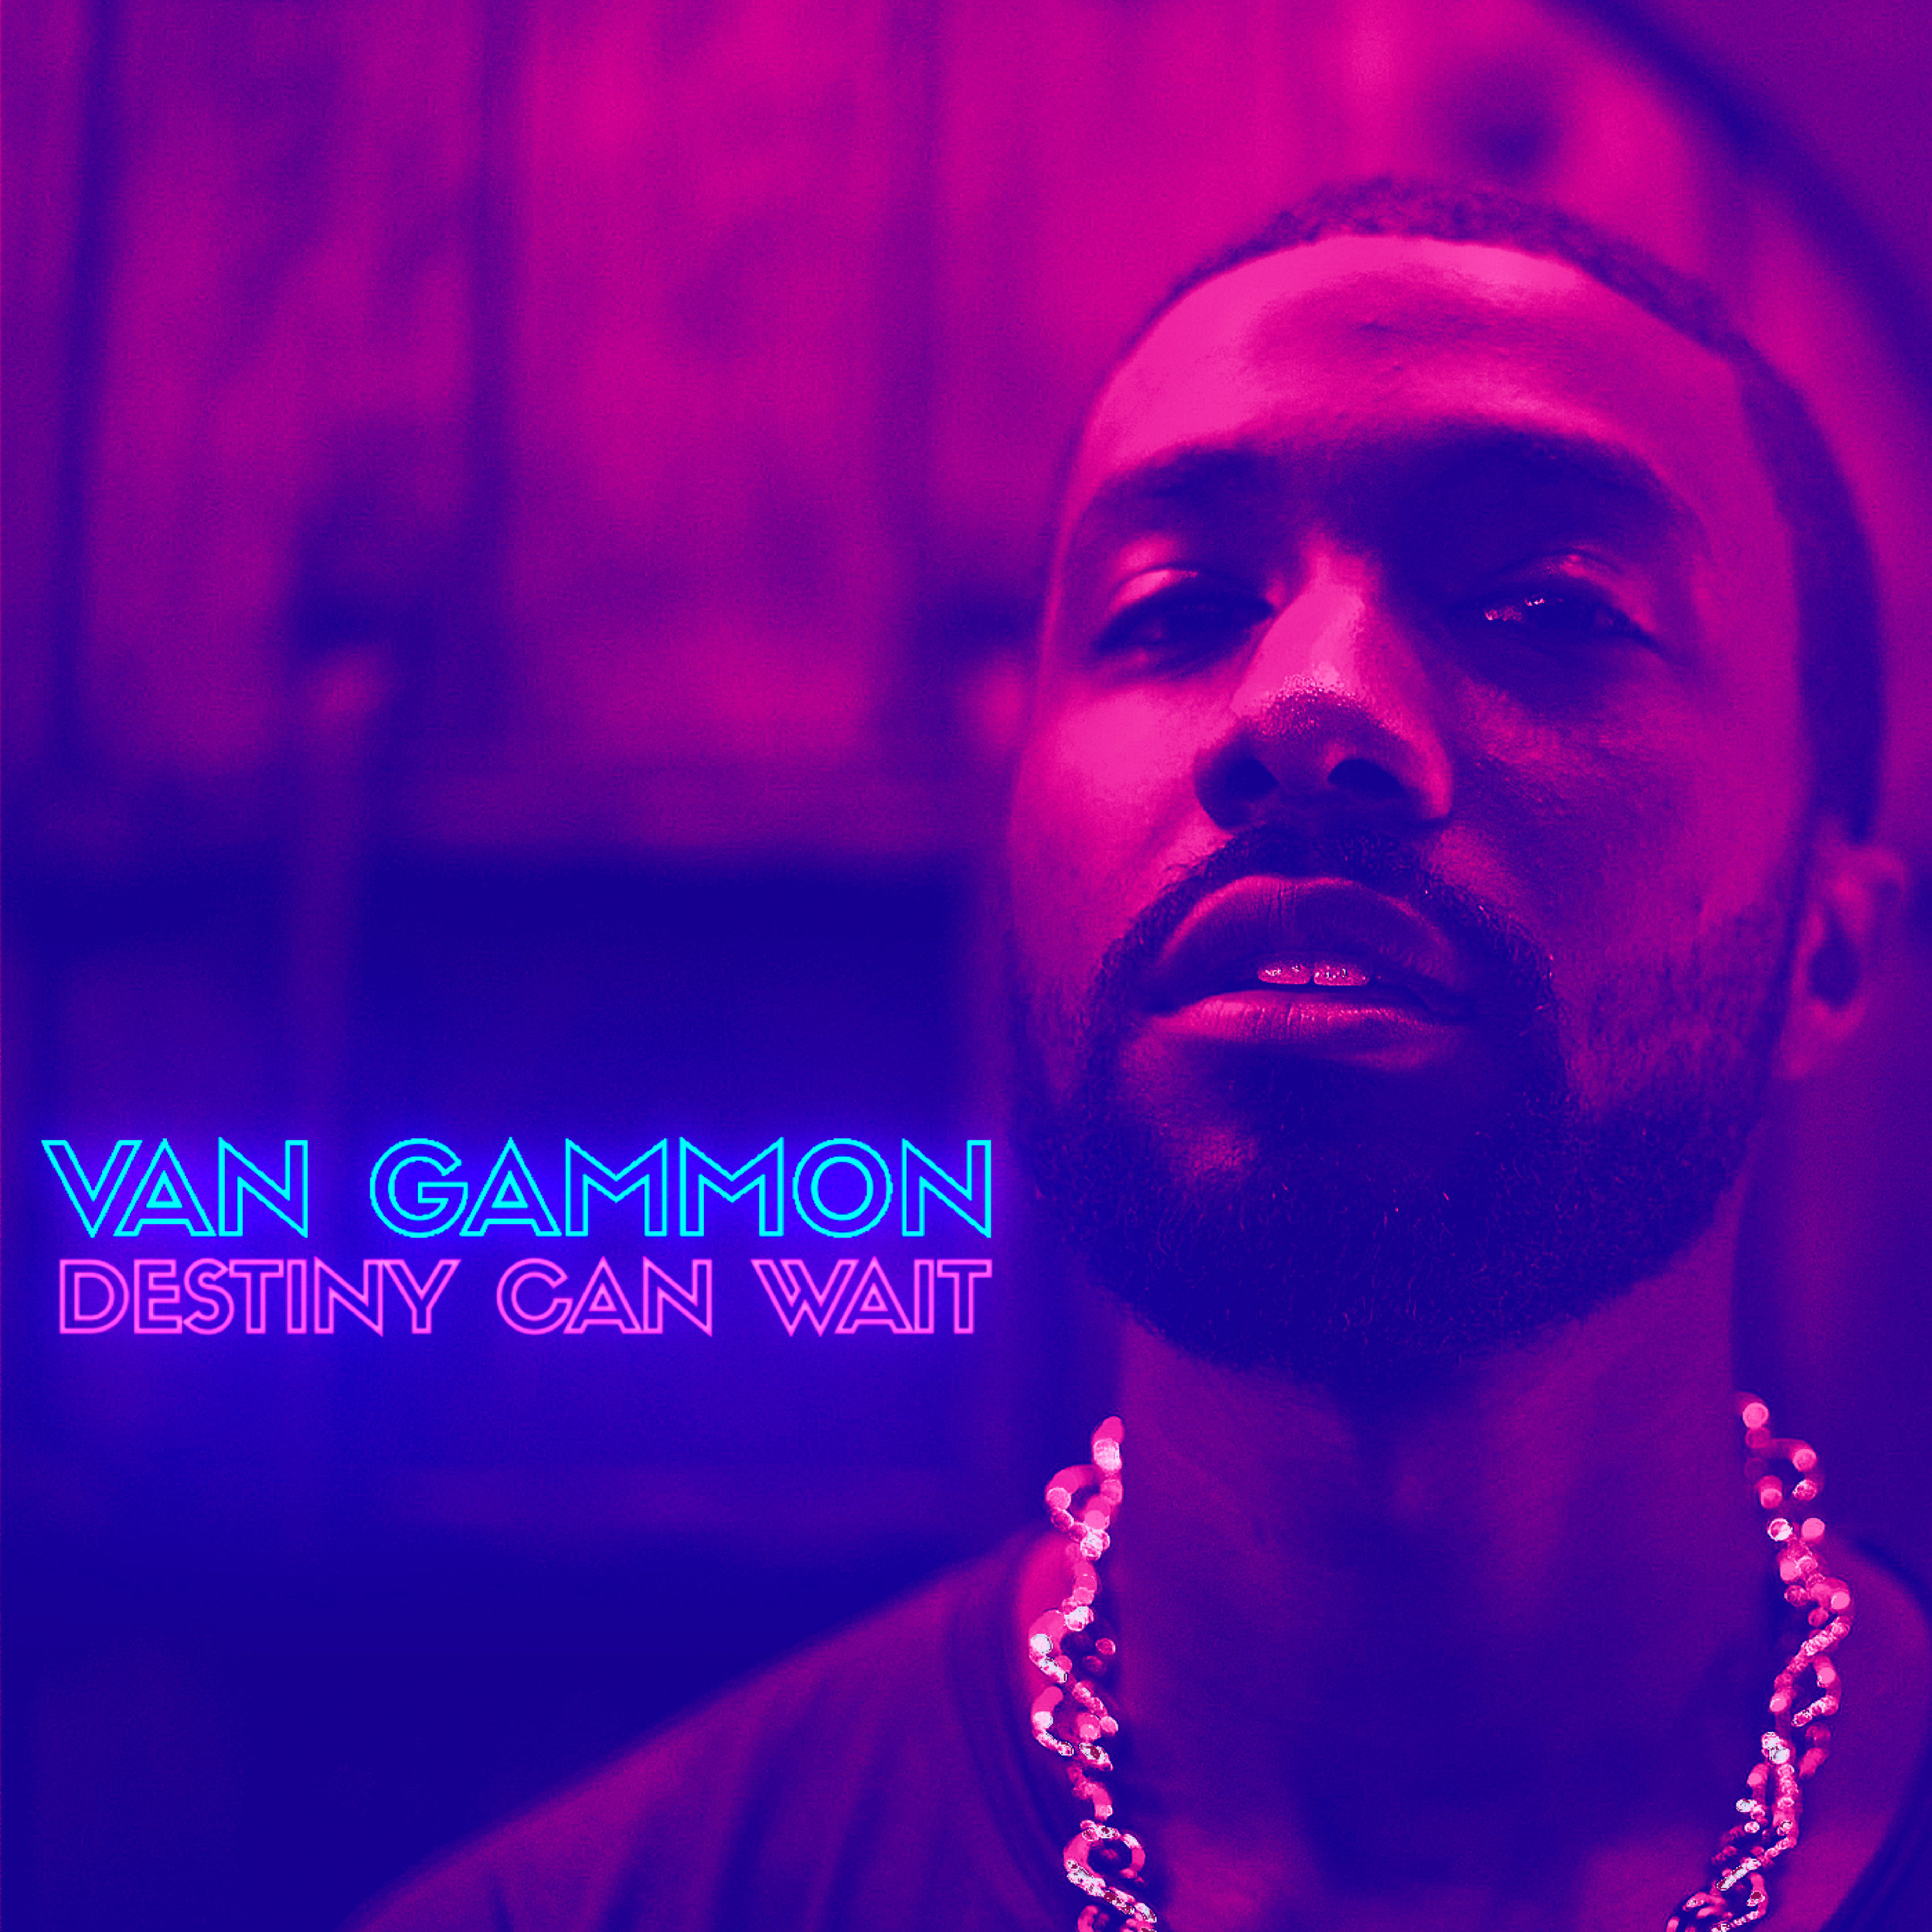 Van Gammon - Destiny Can Wait (2018)